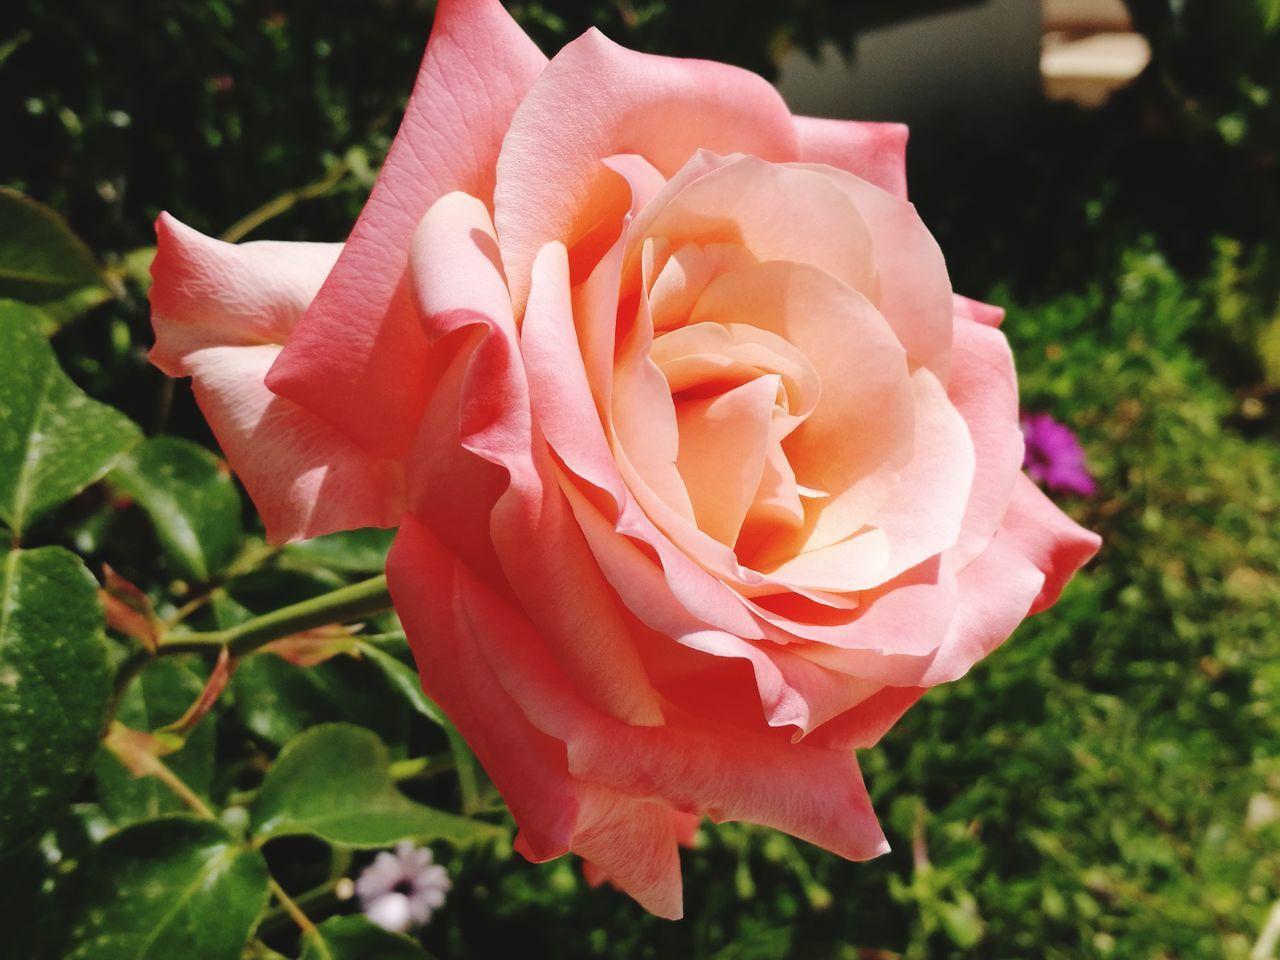 flower, petal, flower head, nature, fragility, rose - flower, growth, beauty in nature, plant, freshness, close-up, pink color, no people, focus on foreground, outdoors, blooming, day